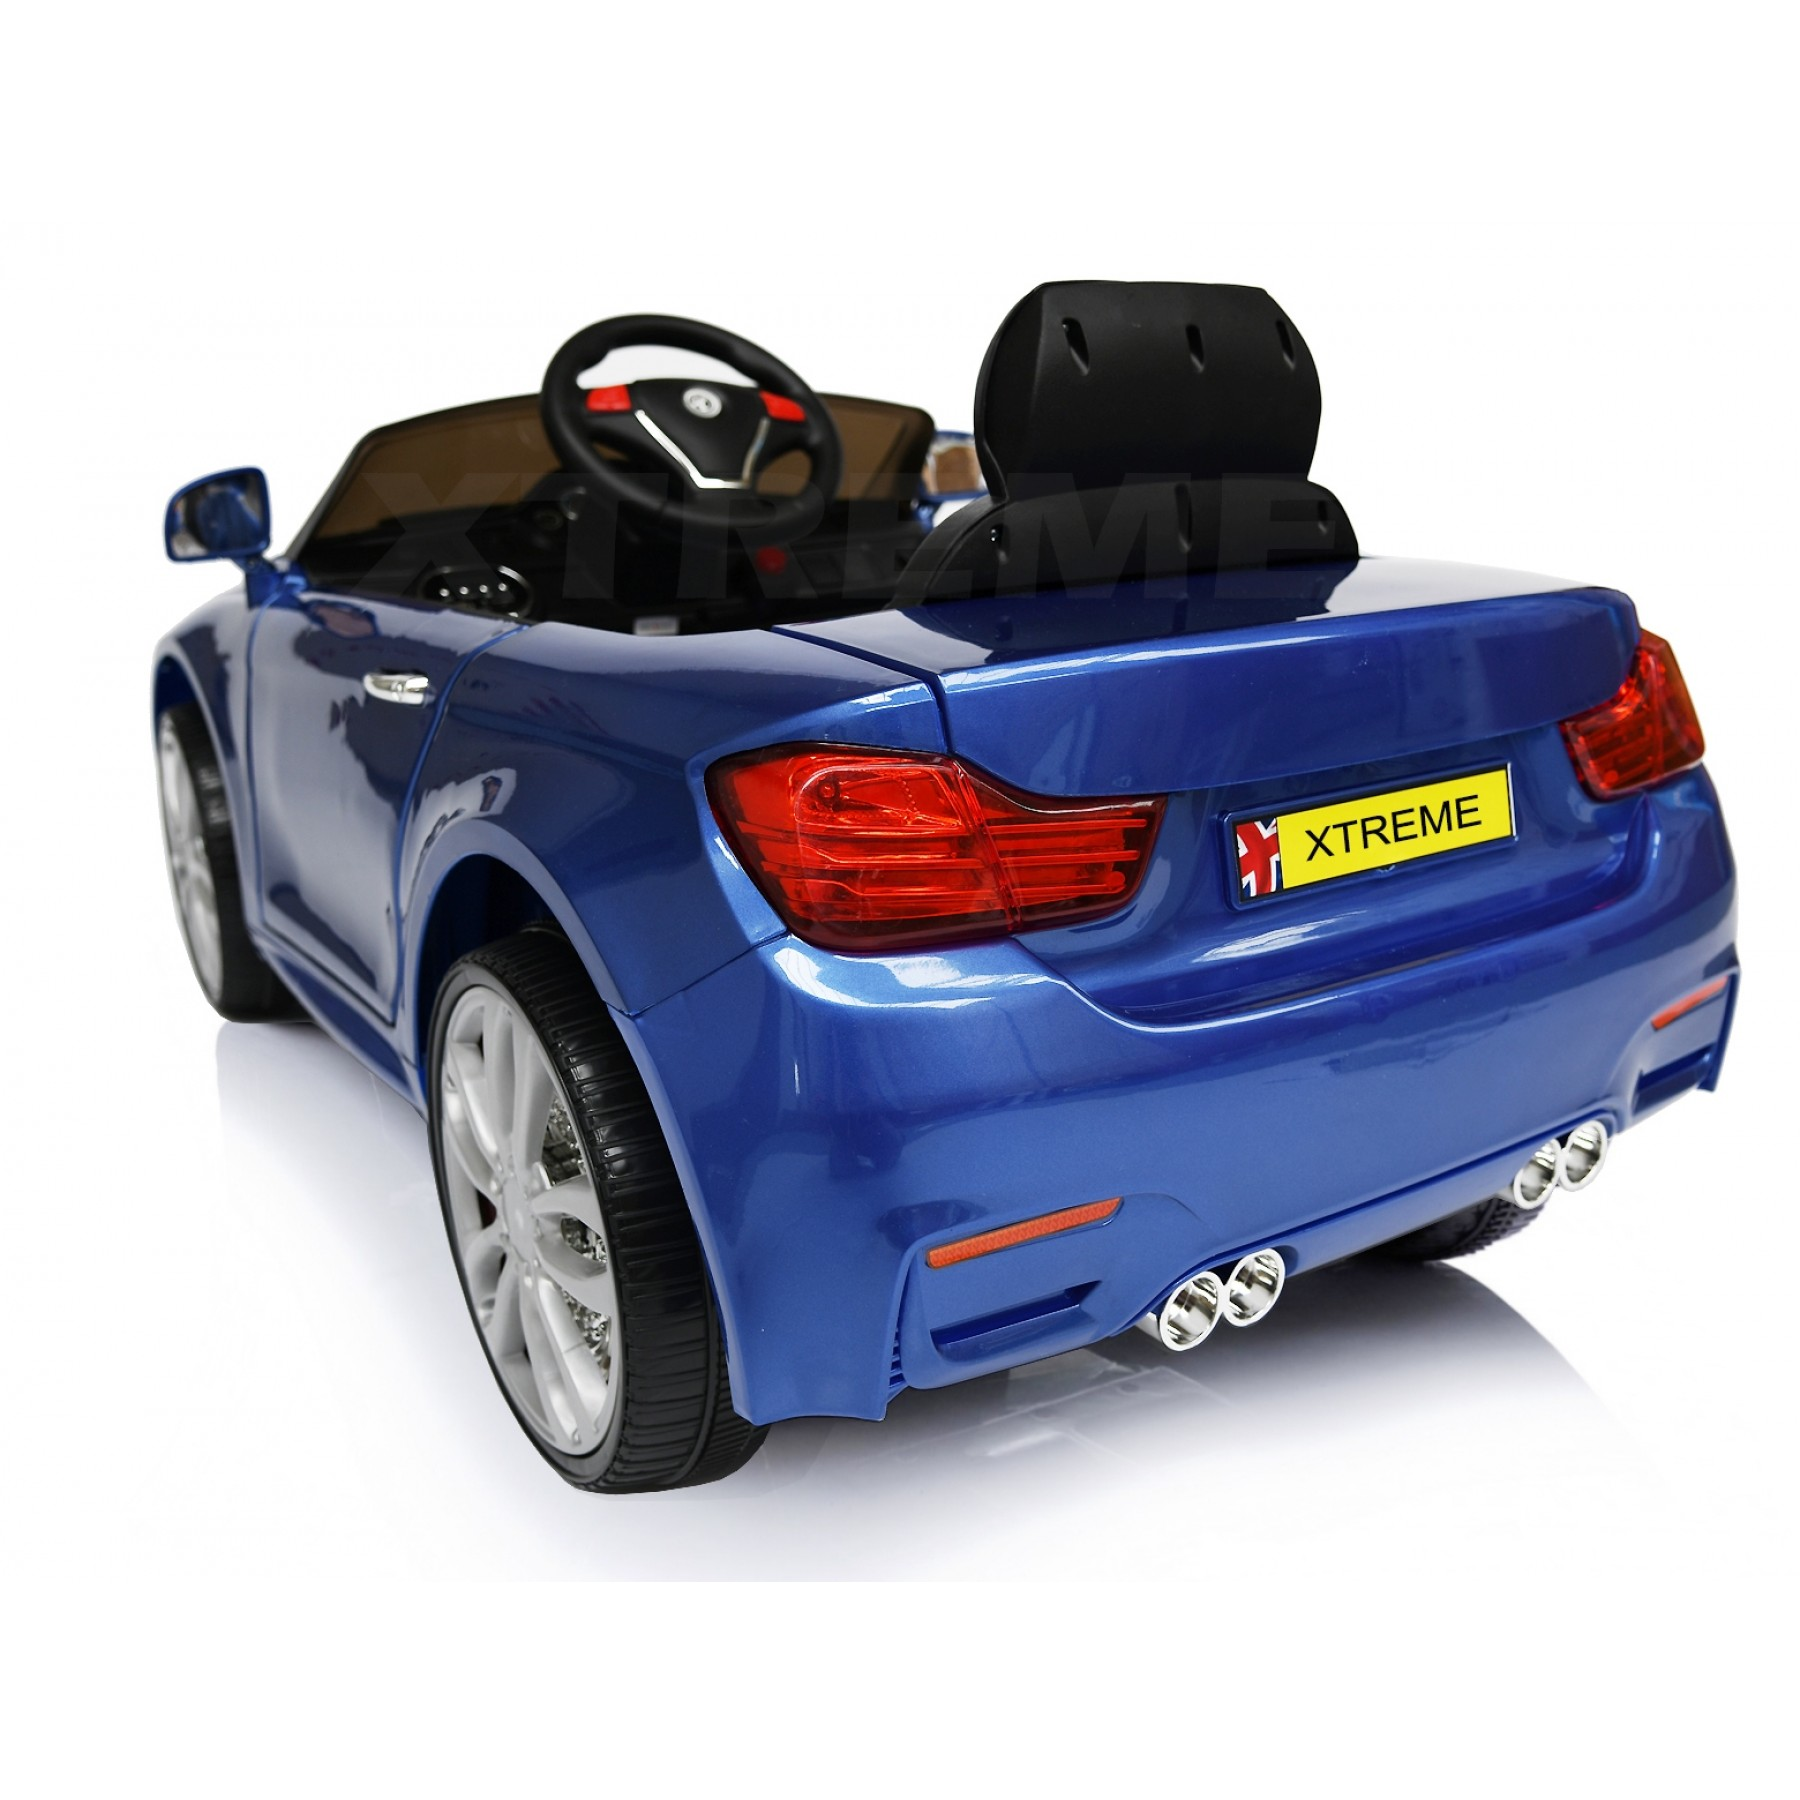 Xtreme 12v BMW 4 Series M4 Style Ride on Car in Blue